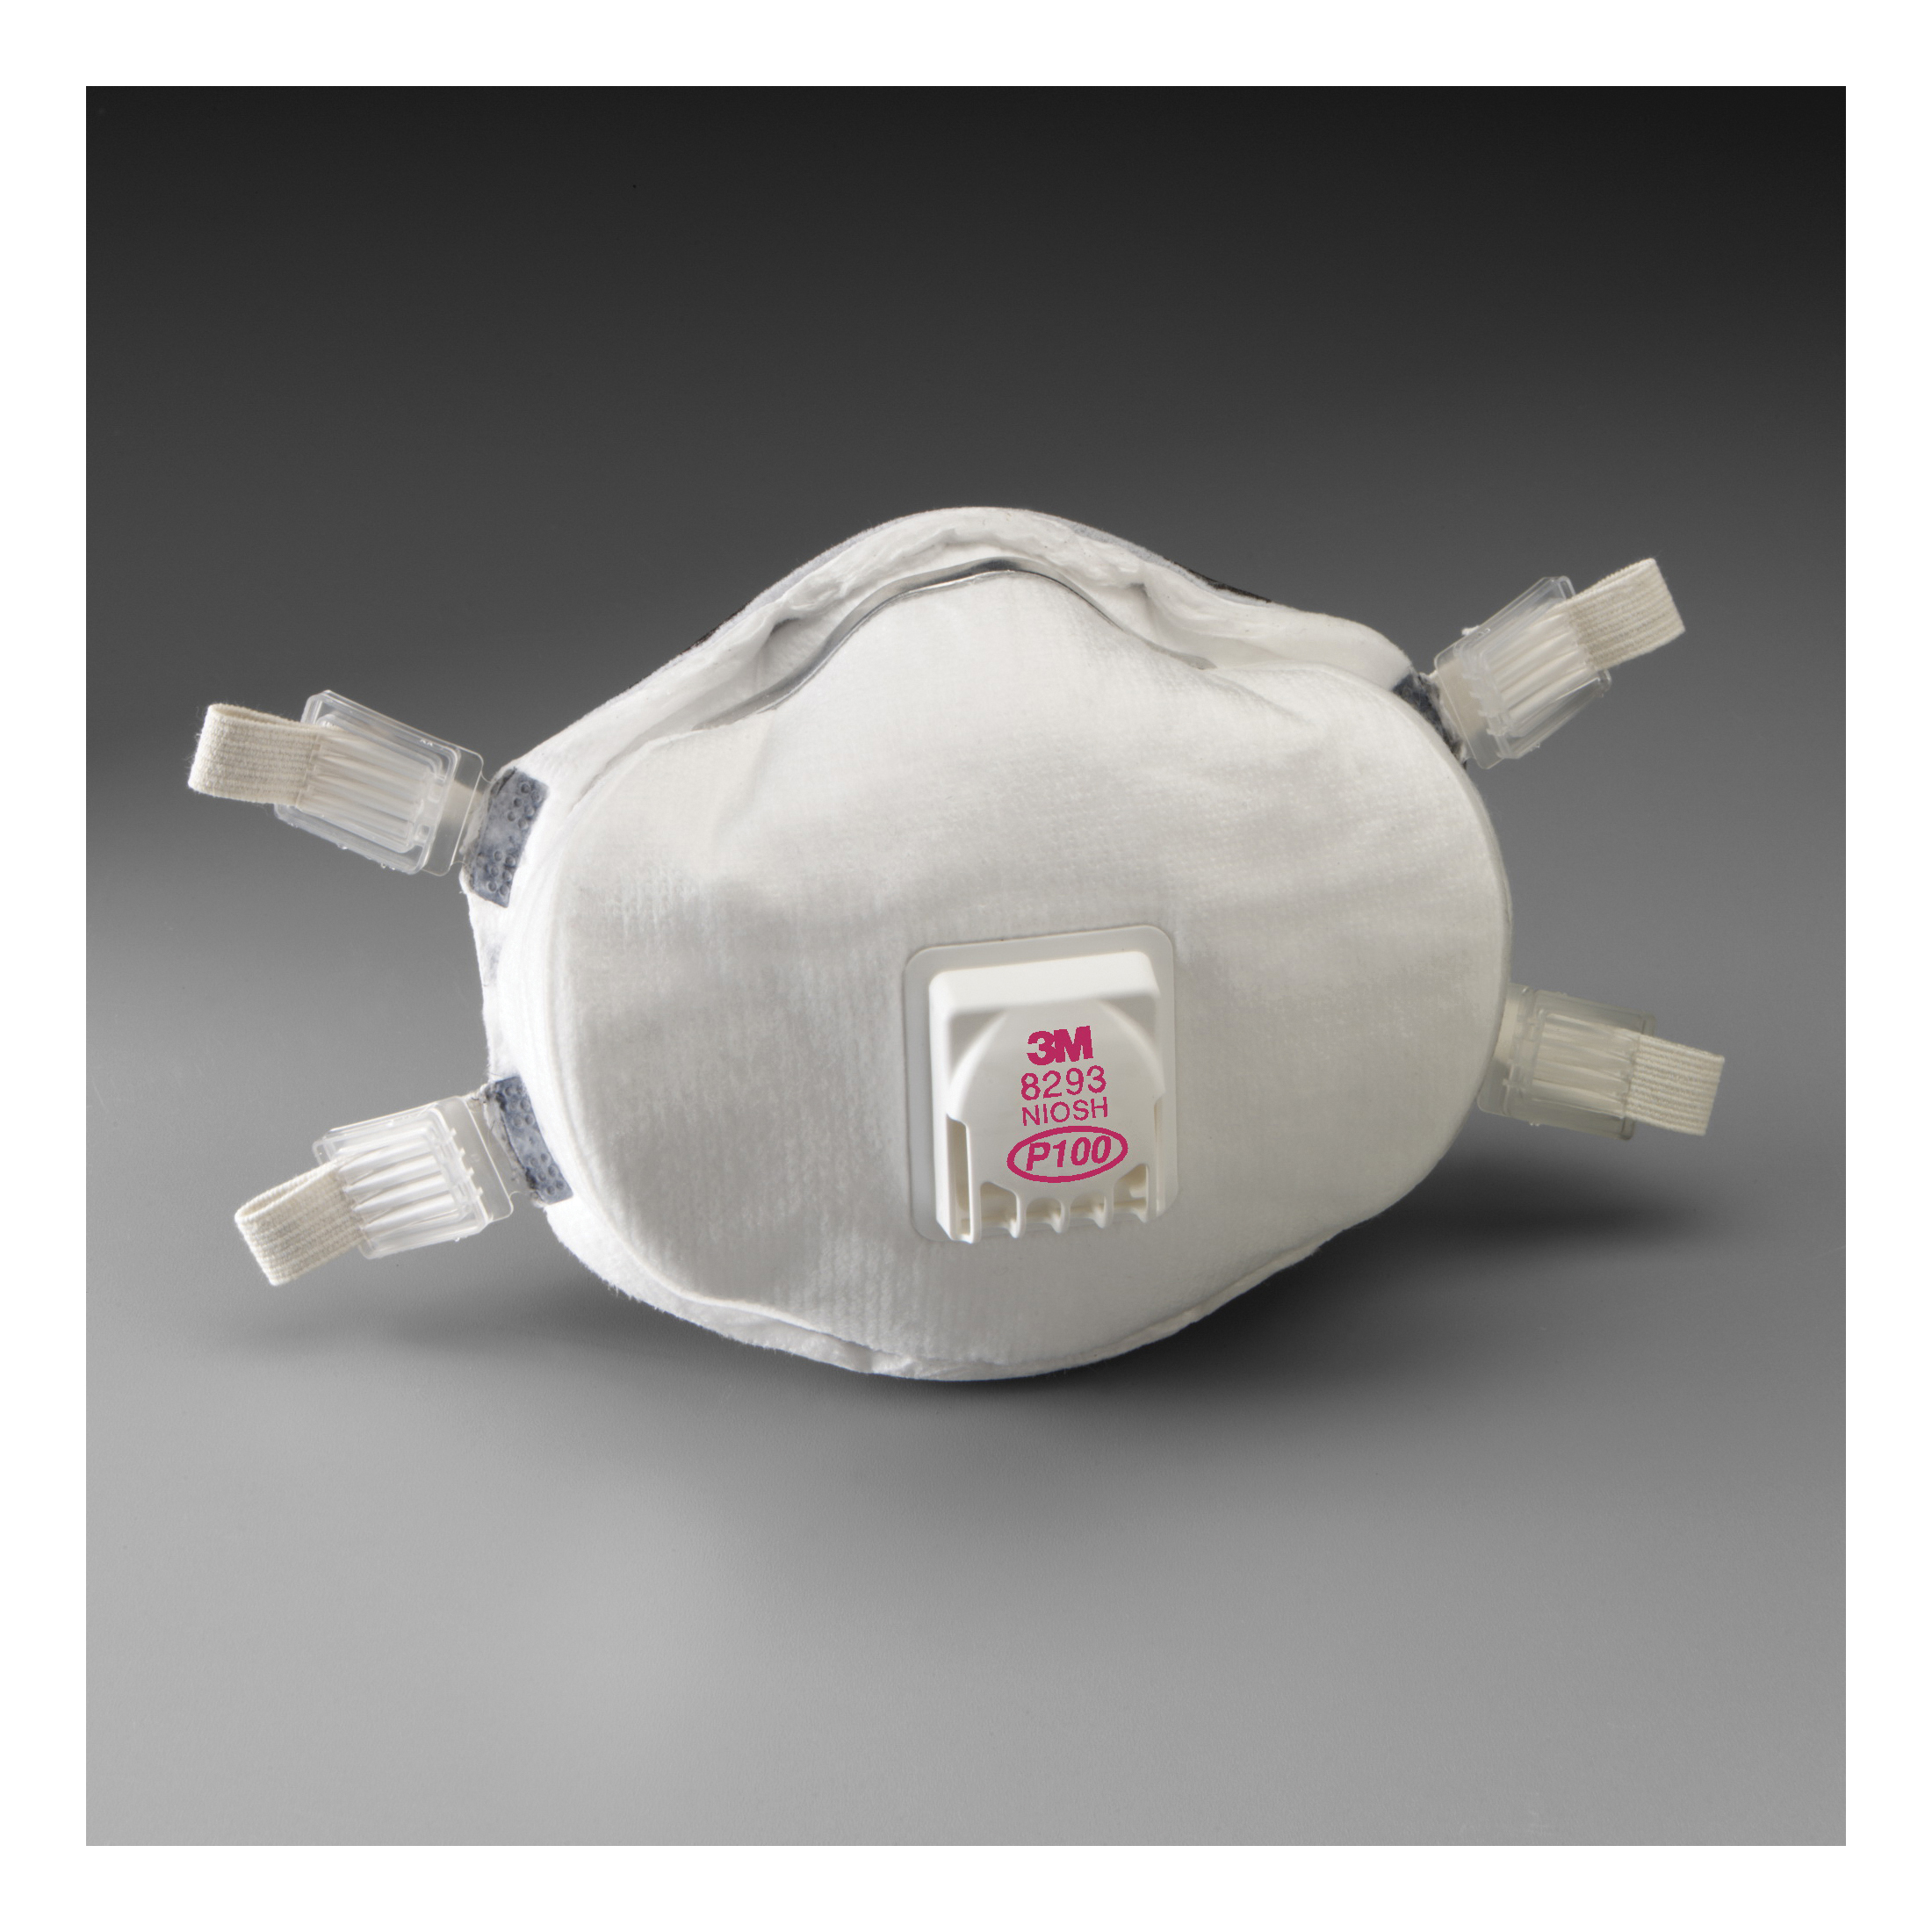 3M™ 051138-54305 8110S Cup Style Disposable Particulate Respirator, S, Resists: Certain Non-Oil Based Particles, Dust and other Particles